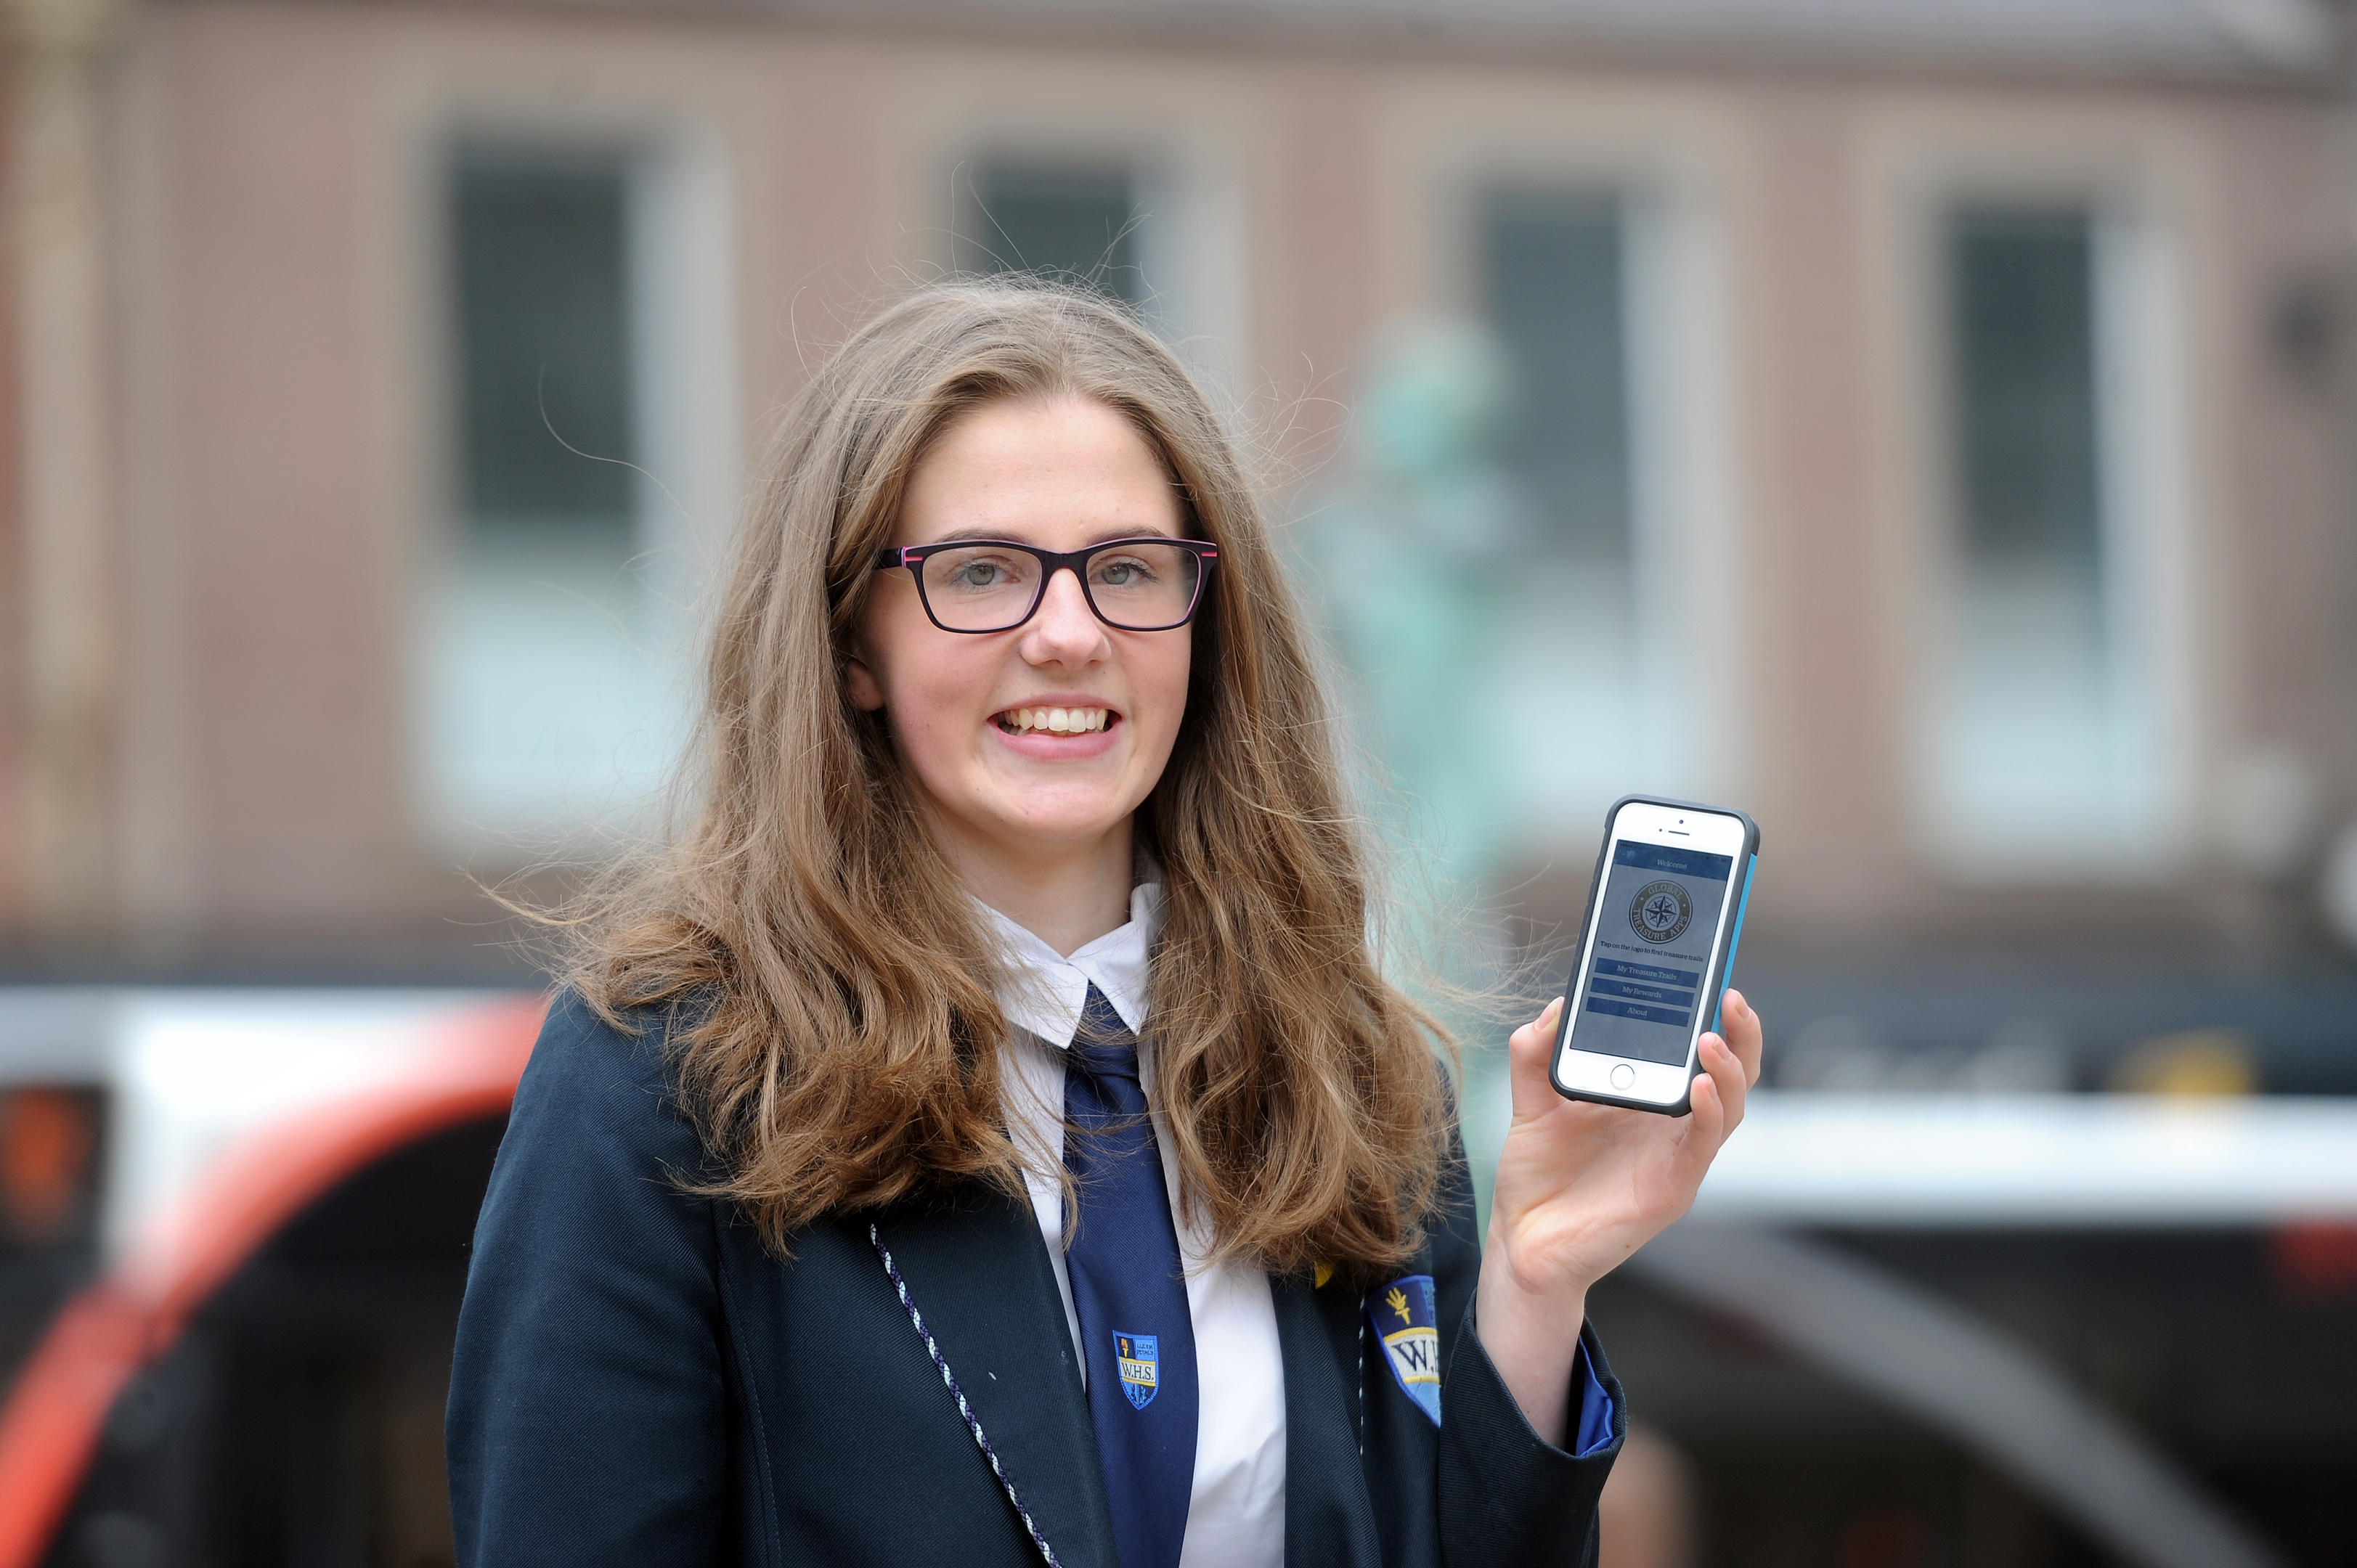 Victoria Johnston (S6) pupil at Webster's High School who proposed the app.